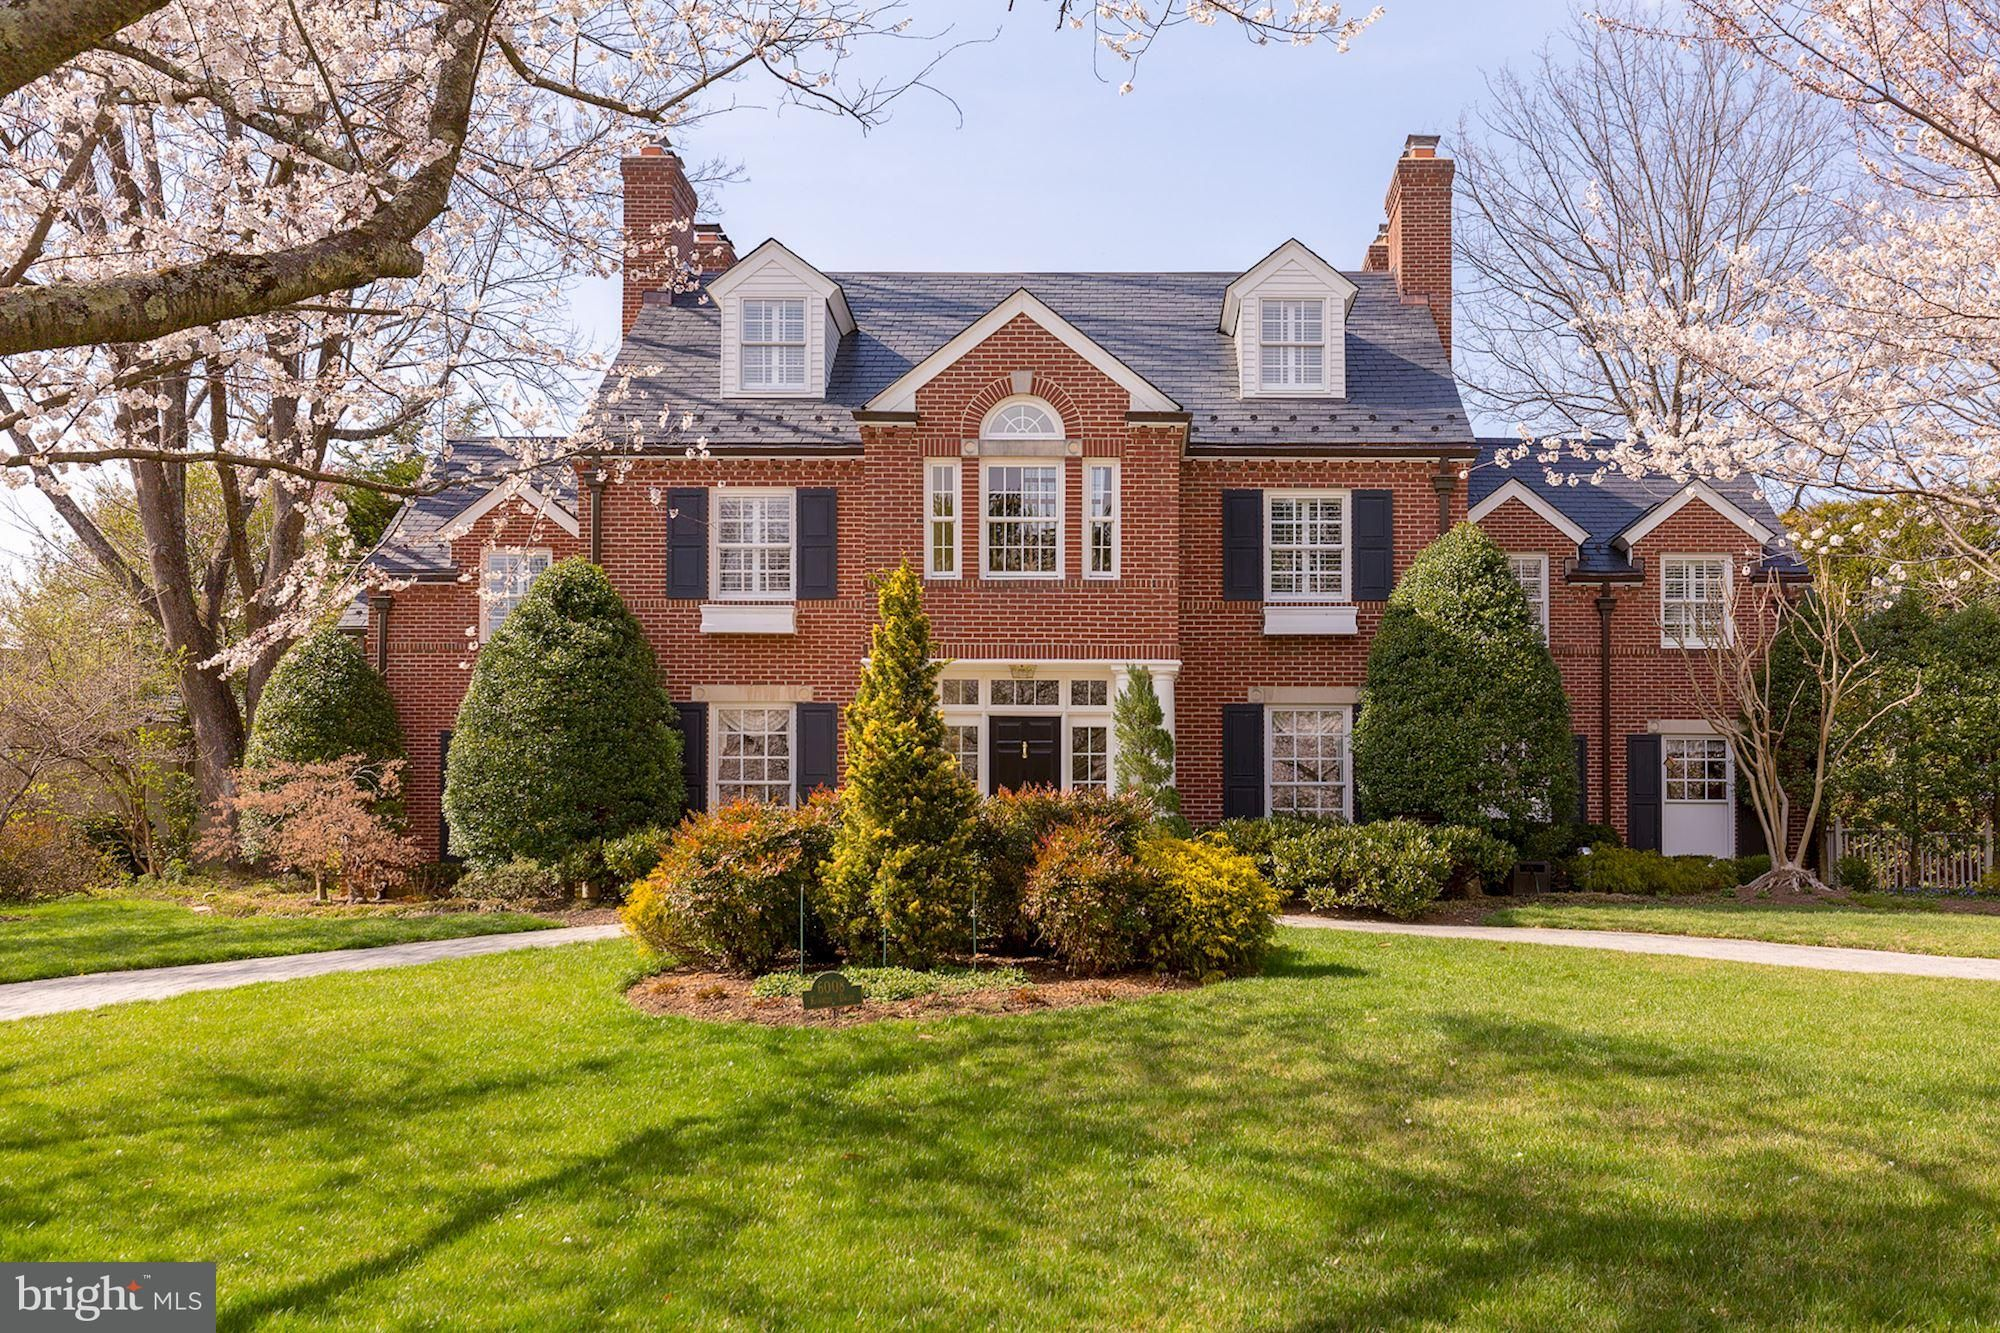 Chevy Chase Real Estate Chevy Chase Md Homes For Sale Chevy